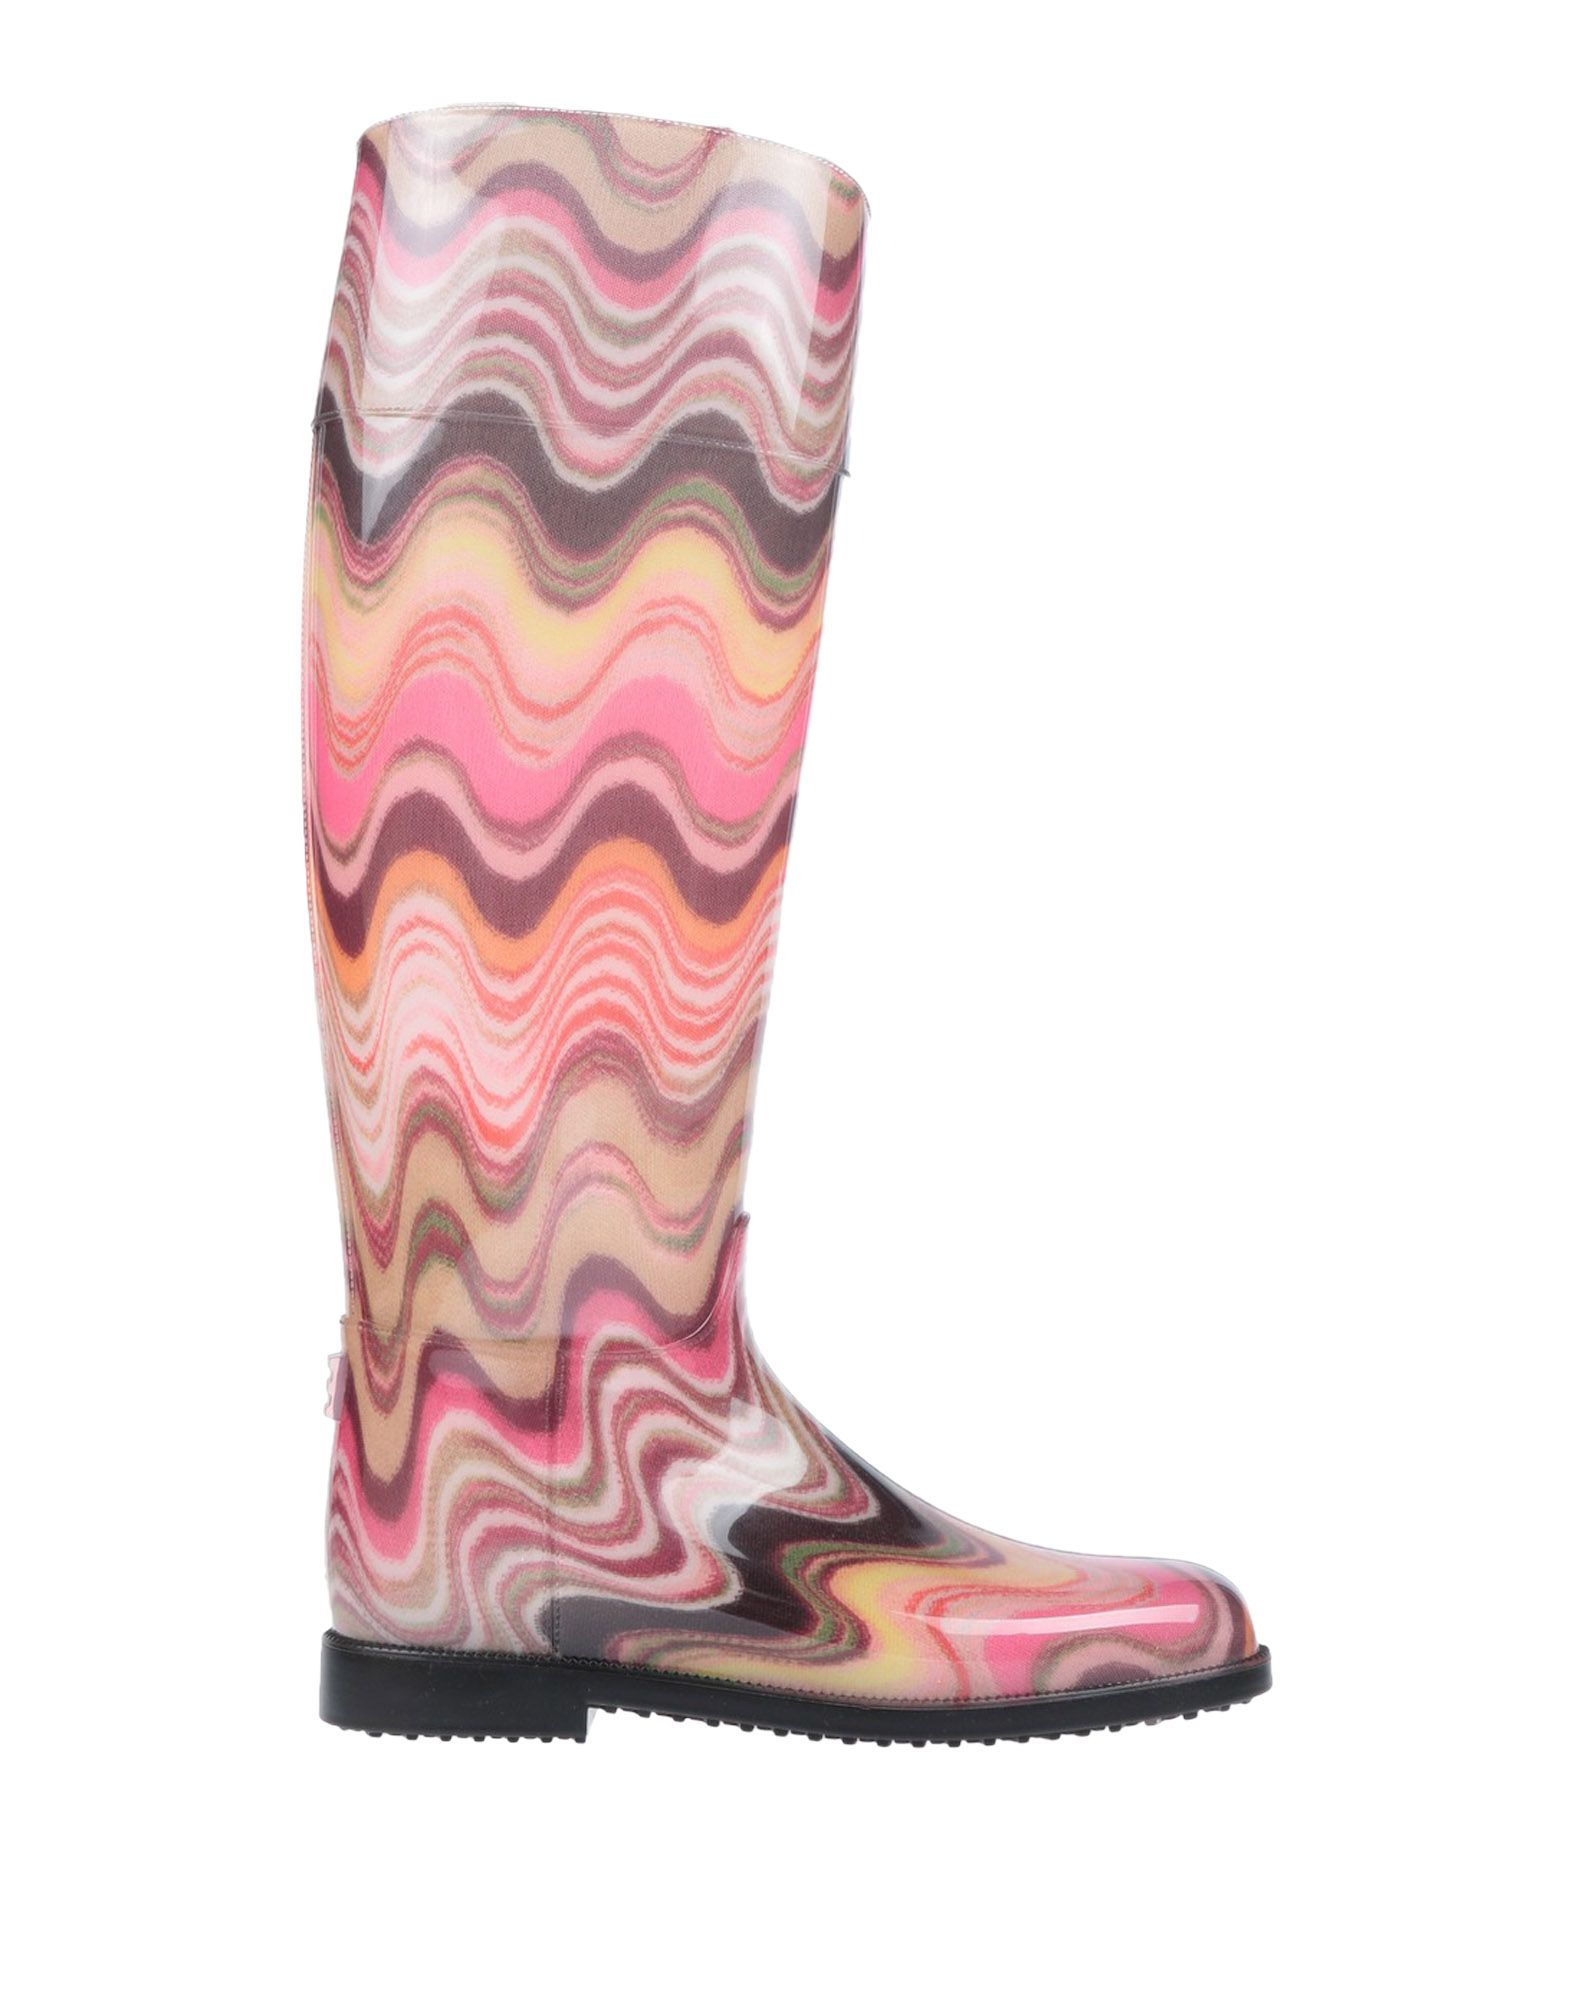 Boots in Pink